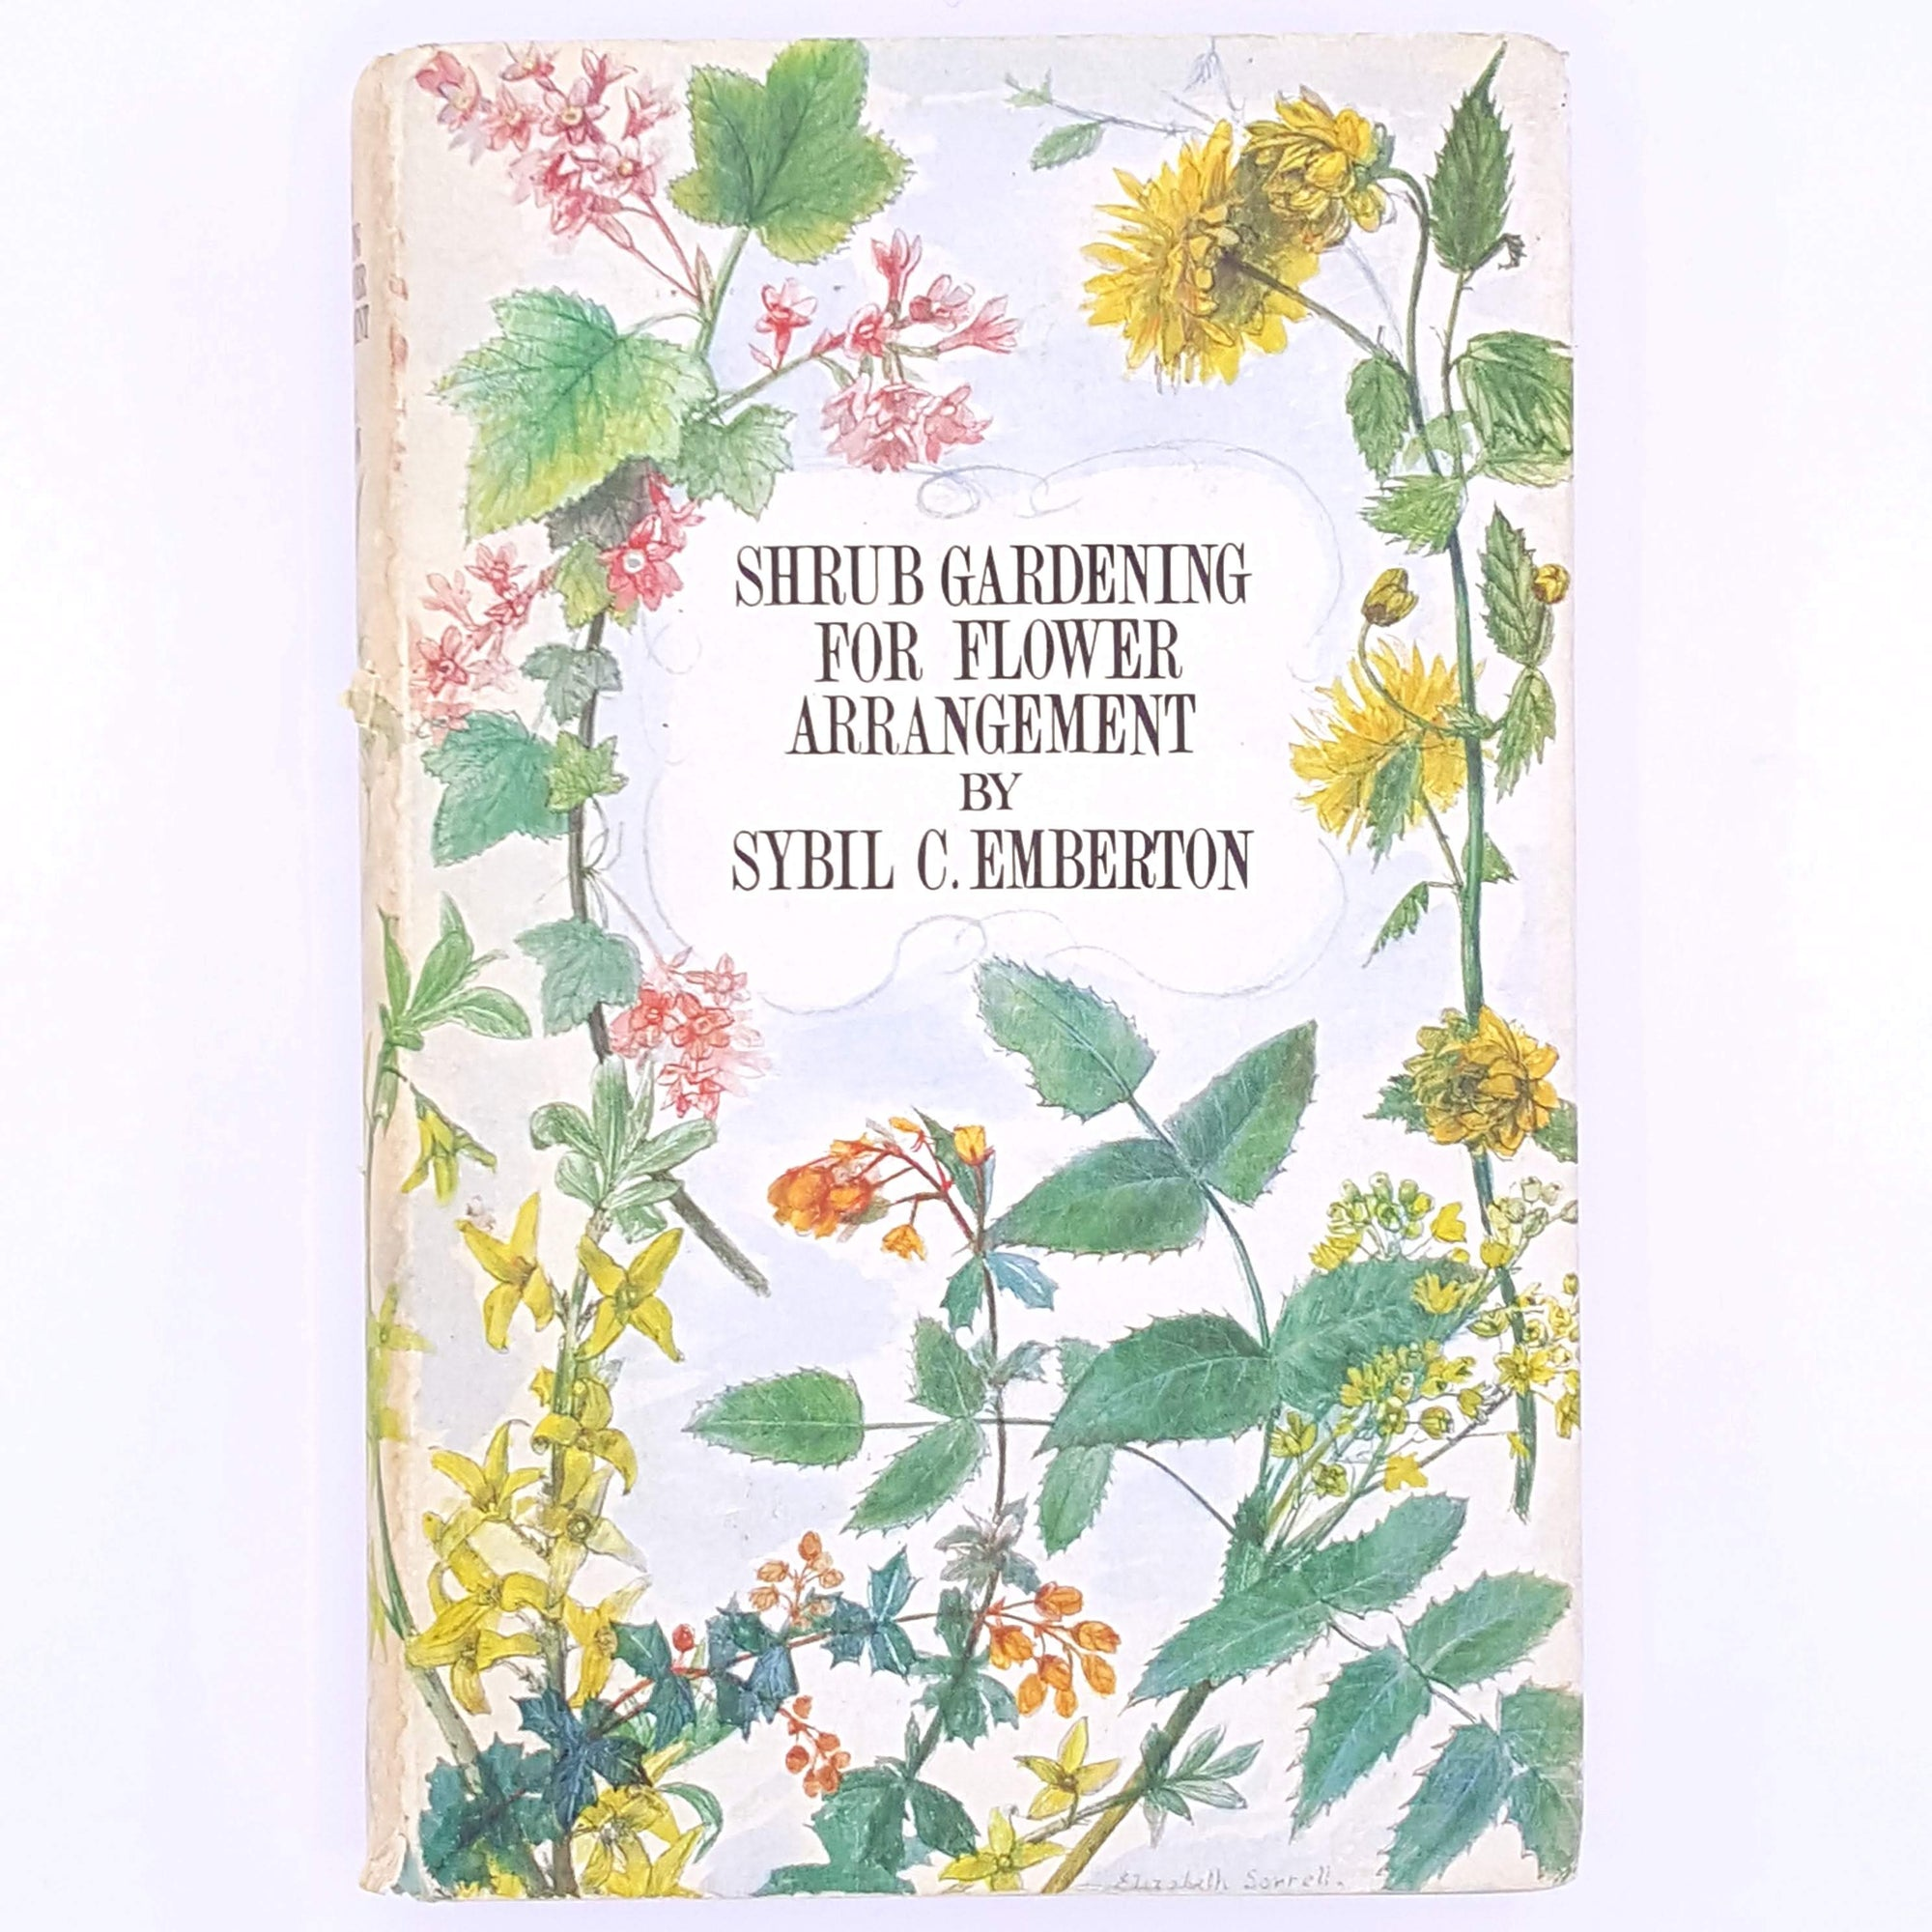 books-country-house-library-christmas-gifts-vintage-classic-horticultural-antique-floral-decorative-gardening-patterned-flower-arrangement-gardeners-old-thrift-